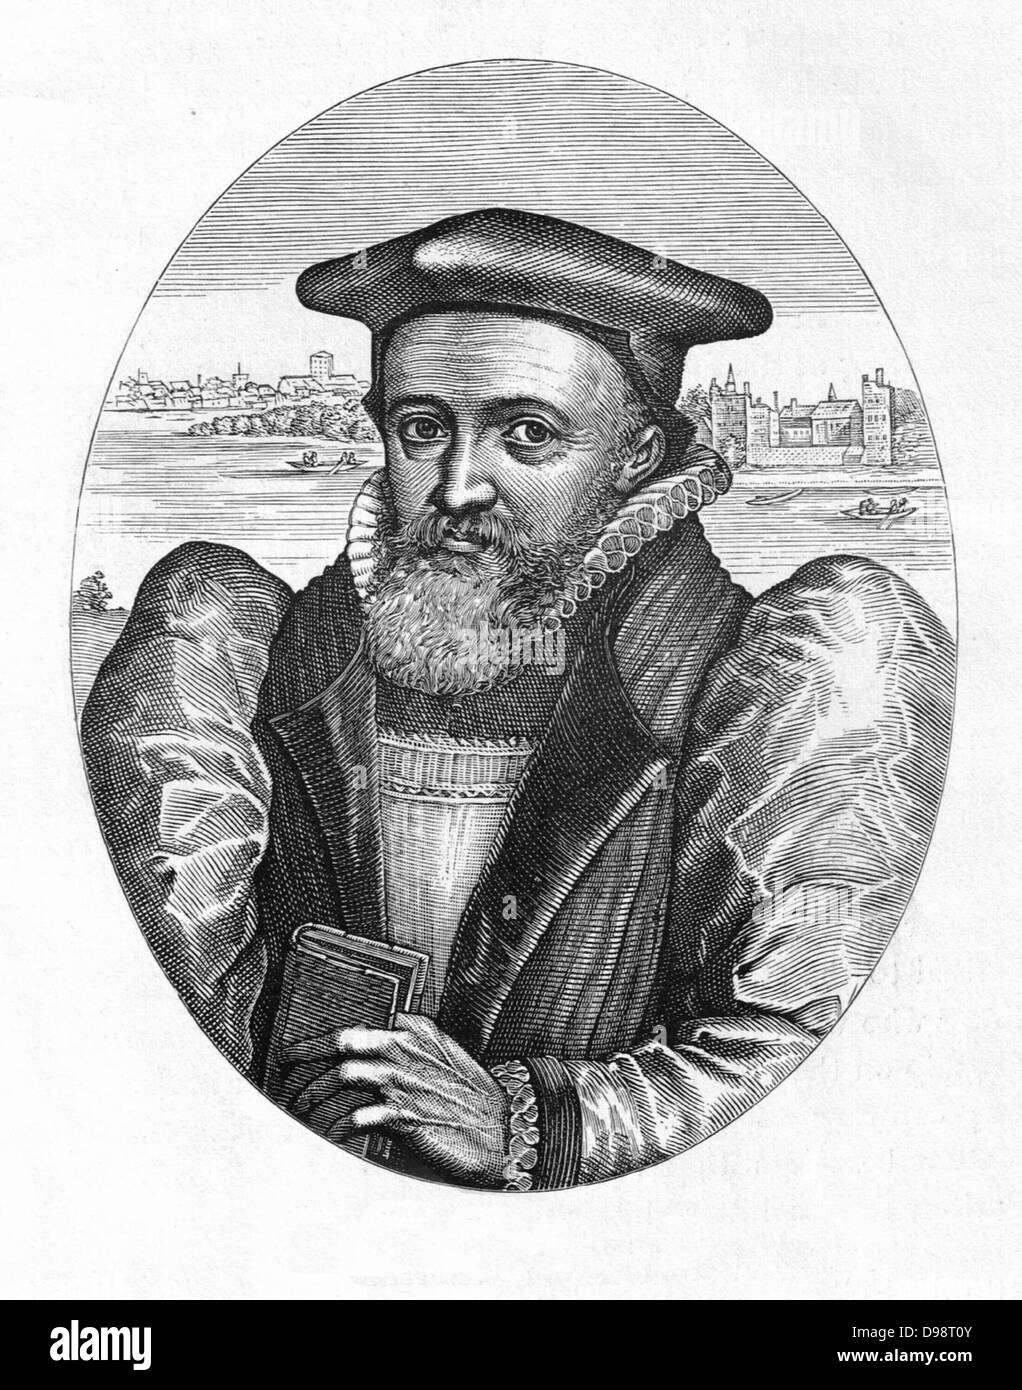 George Abbot (October 19, 1562 – August 5, 1633) was an English divine and Archbishop of Canterbury. He also served - Stock Image